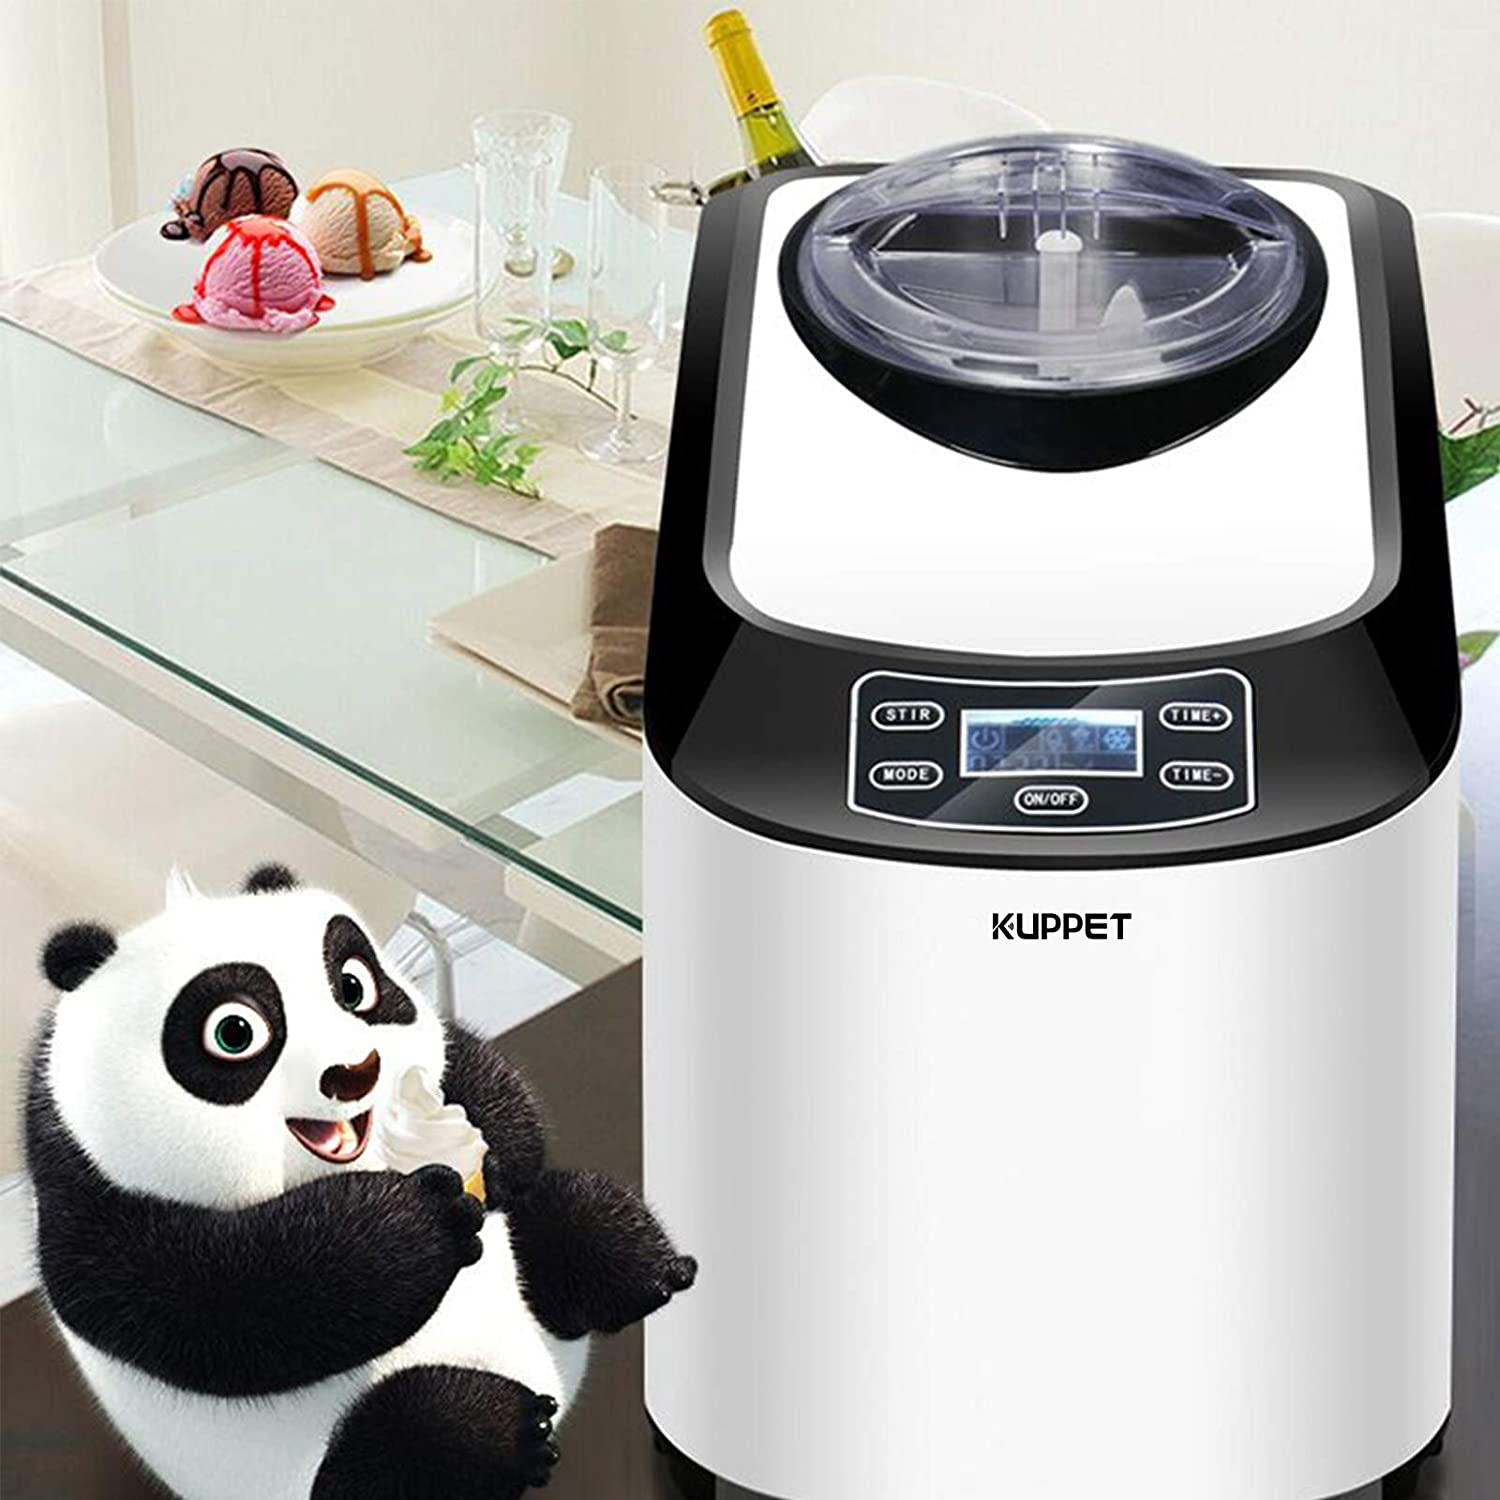 Auto Shut-off Timer Function KUPPET Ice Cream Maker Electric Programmable LCD Display Screen Countertop Easy Clean Interior Ice Cream Machine 1.6 Quart Automatic Ice Cream Machine